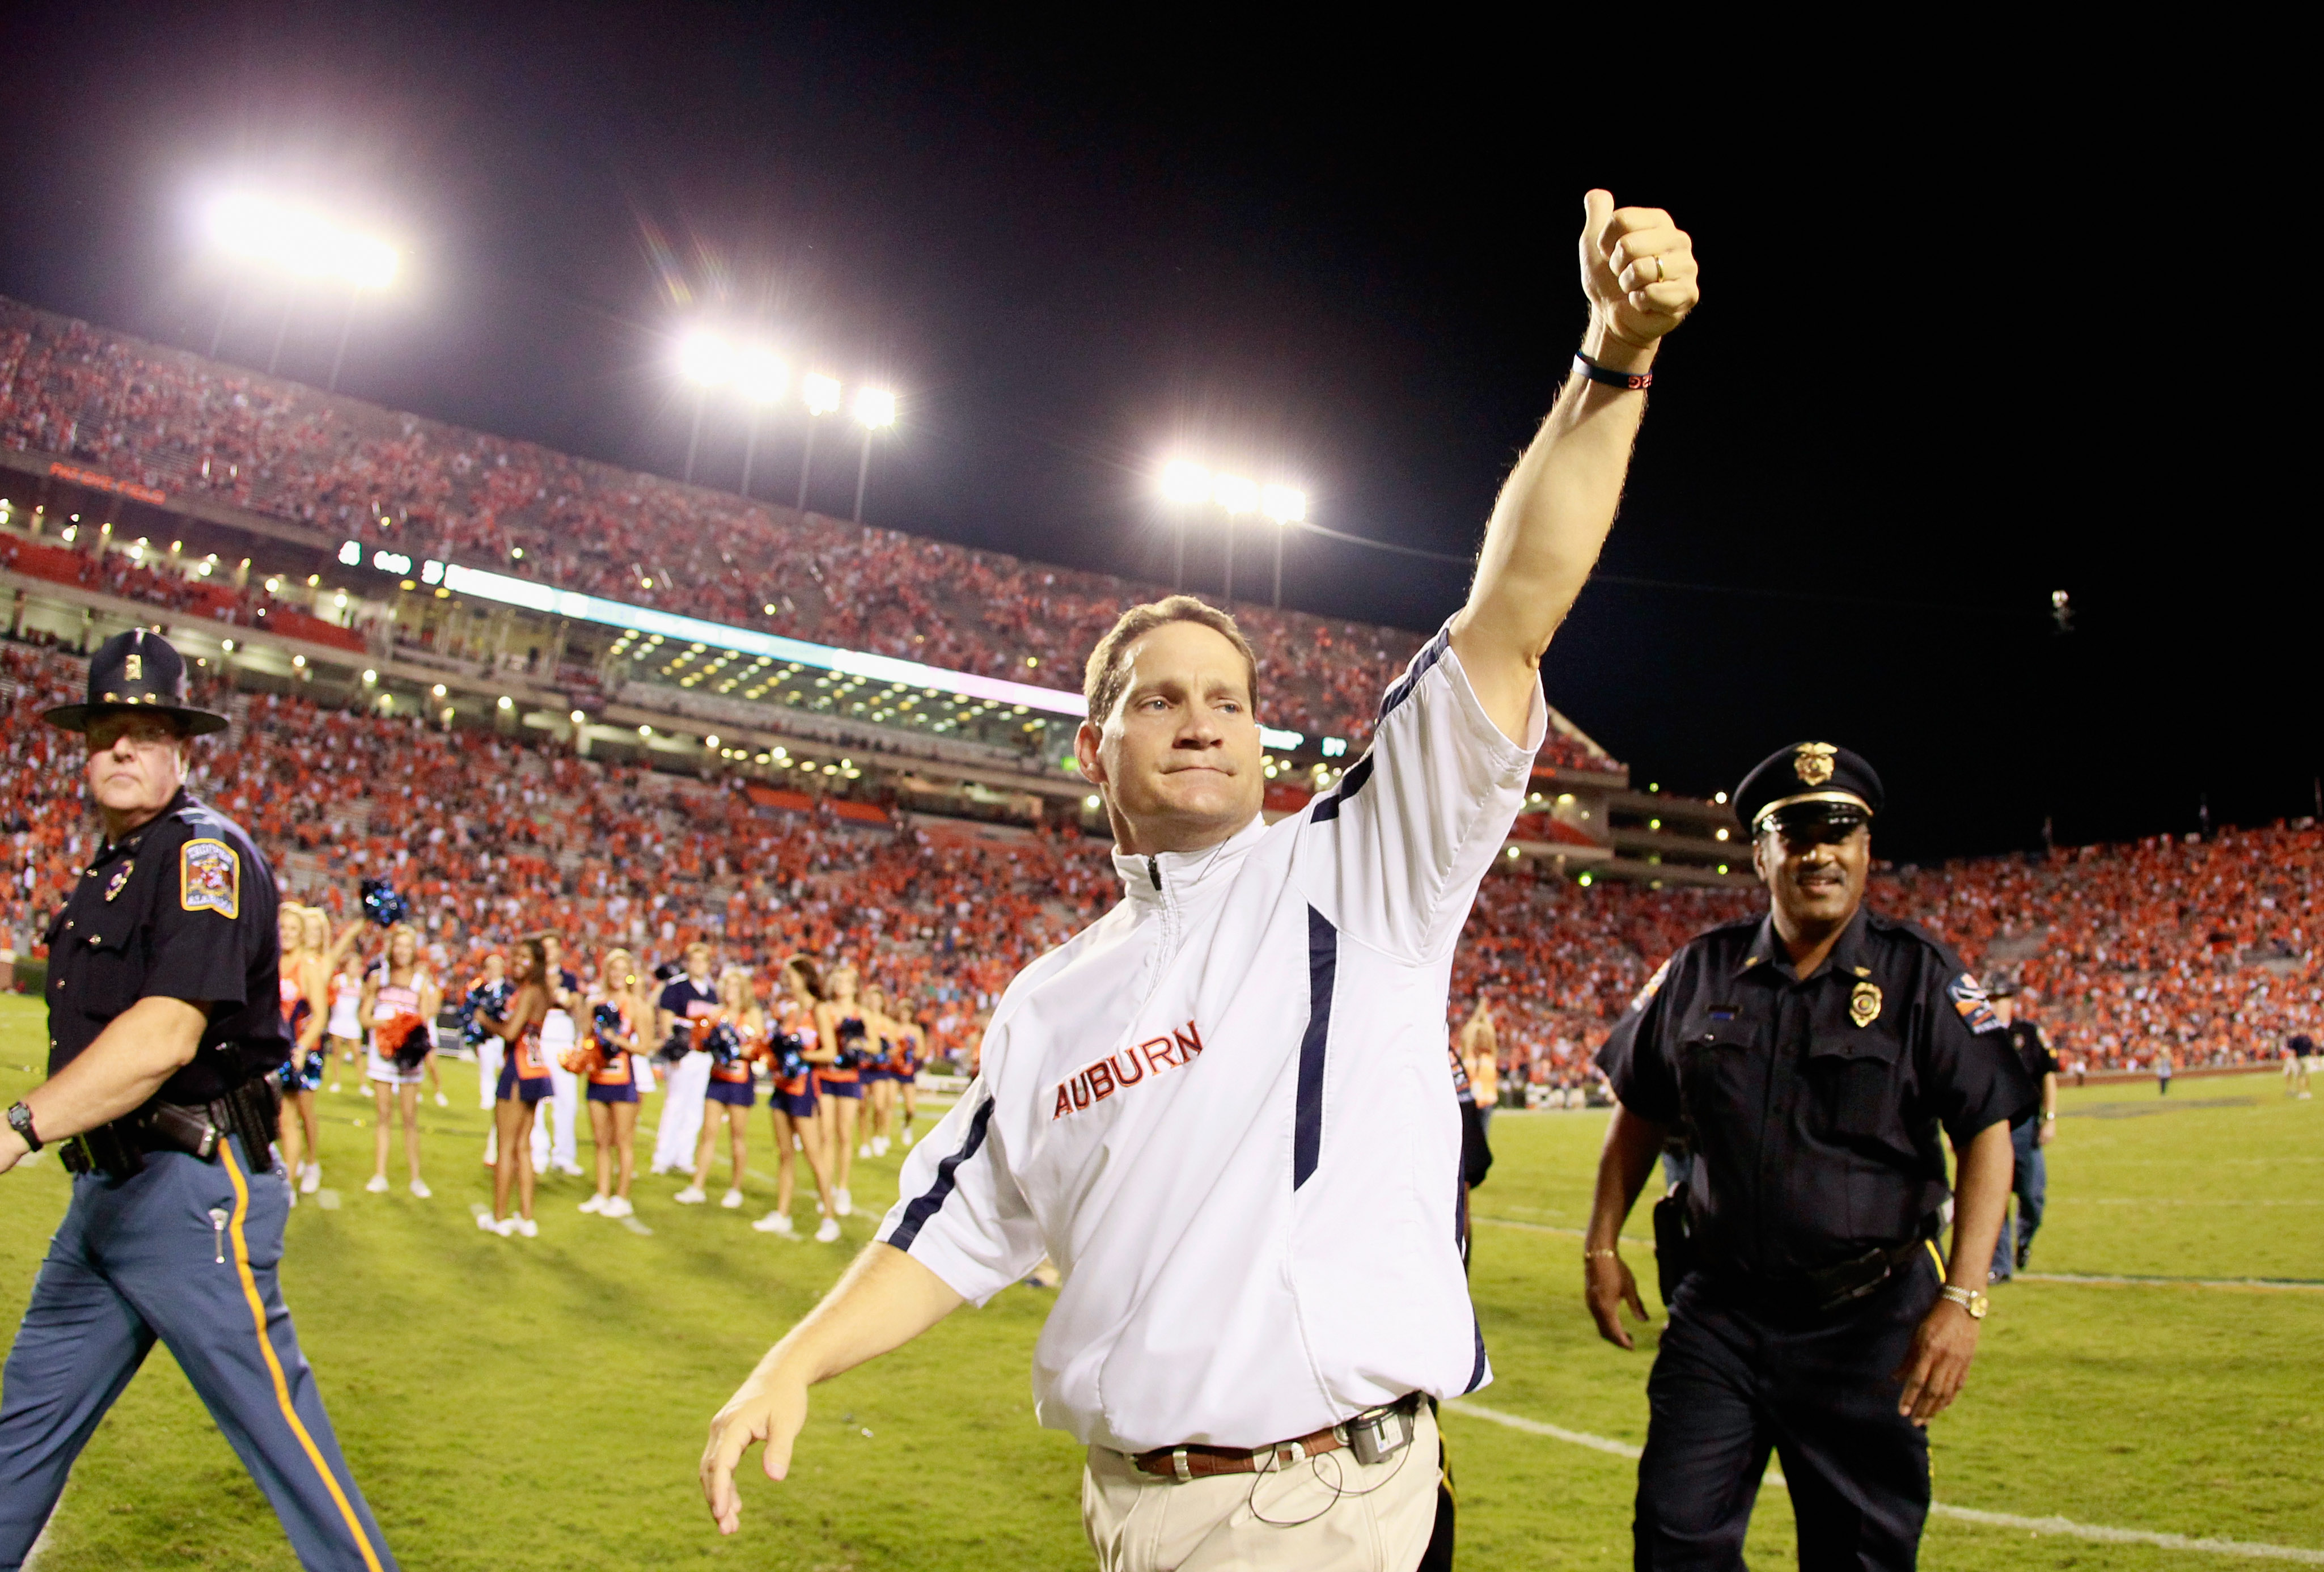 AUBURN, AL - SEPTEMBER 25:  Head coach Gene Chizik of the Auburn Tigers against the South Carolina Gamecocks at Jordan-Hare Stadium on September 25, 2010 in Auburn, Alabama.  (Photo by Kevin C. Cox/Getty Images)